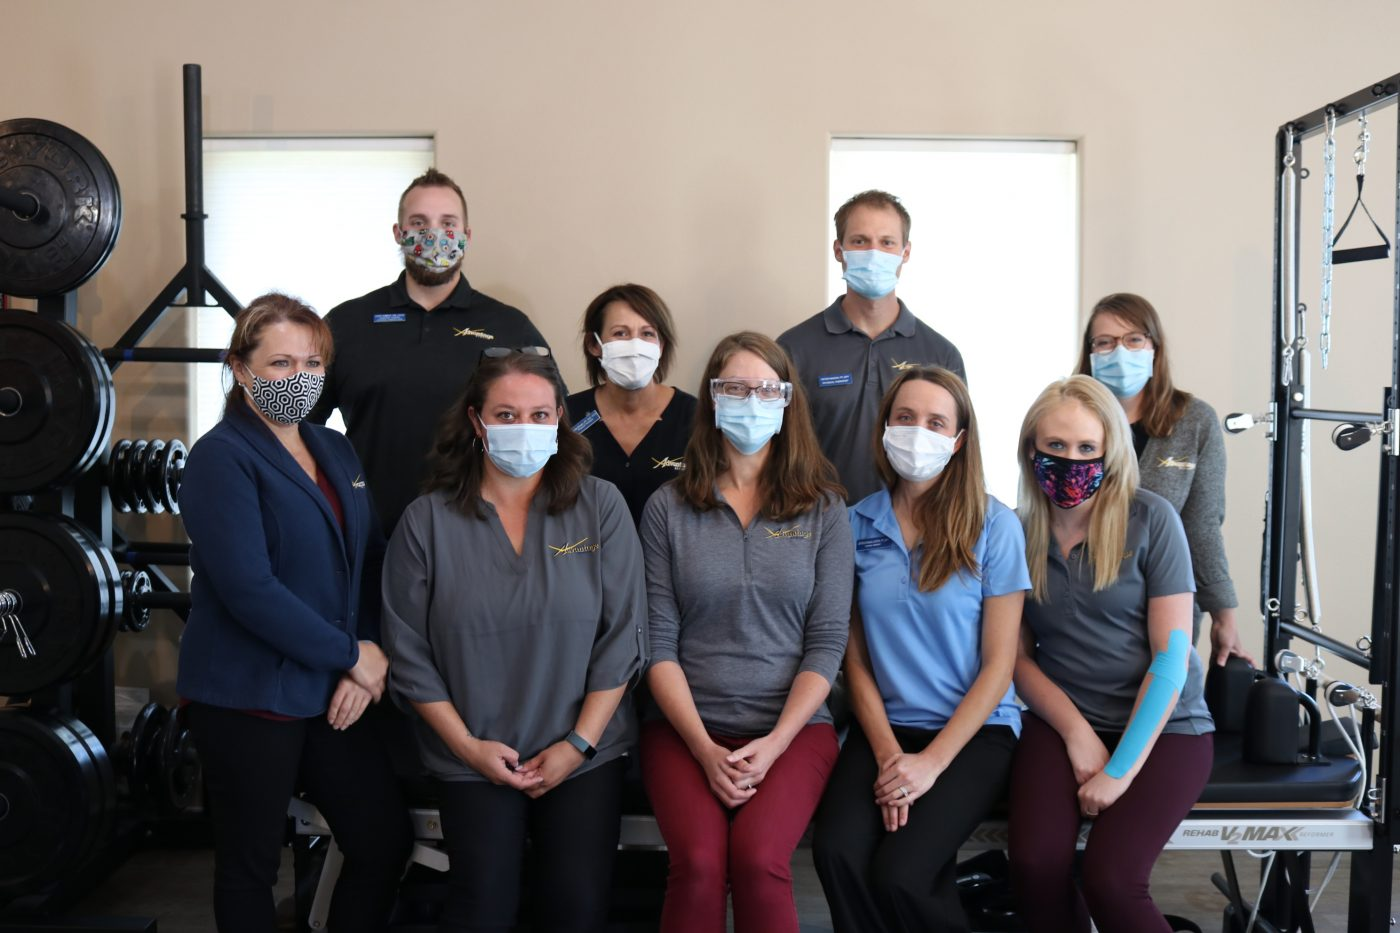 Advantage Rehab staff promoting the use of masks in the office to keep patients and staff members safe and healthy